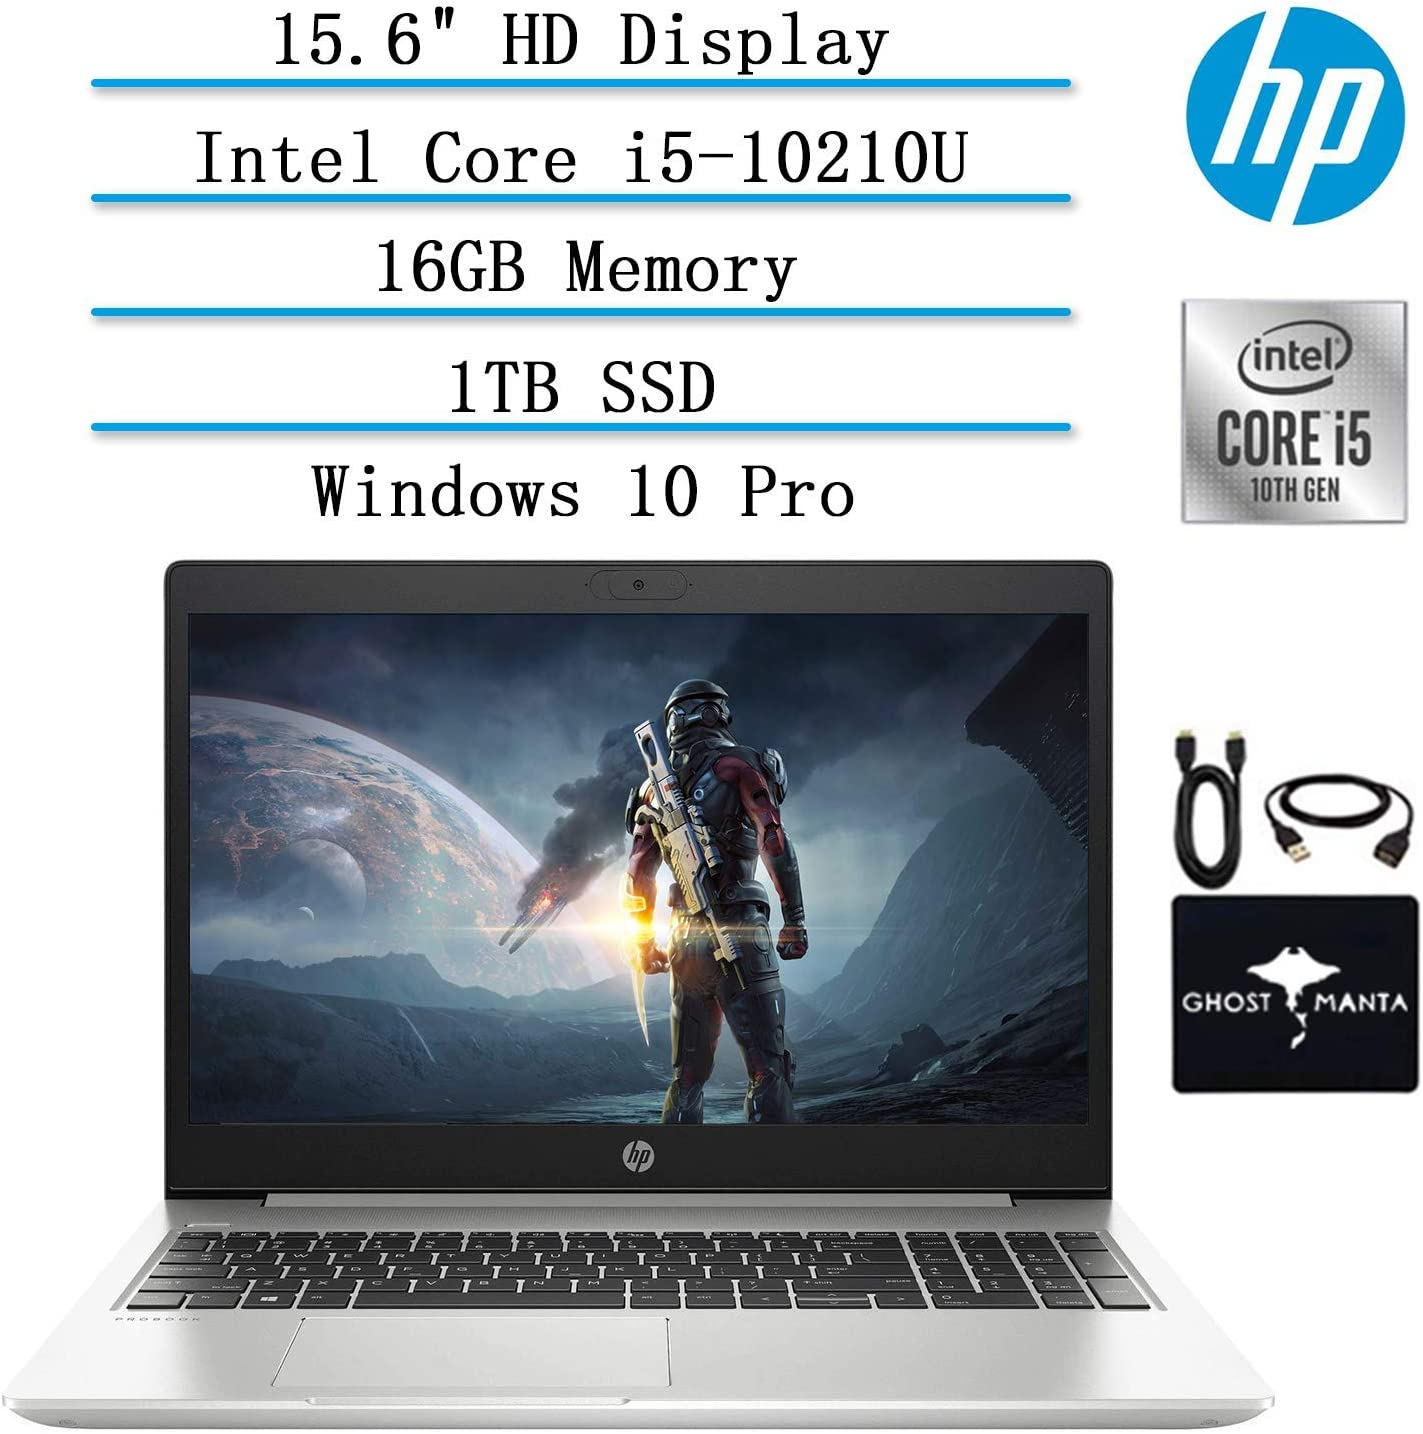 "2020 HP ProBook 15.6"" HD Laptop for Business and Student, 10th Gen Intel Quad Core i5-10210U (Beat i7-8665U), 16GB Memory, 1TB SSD, Backlit-KB, WiFi, USB-C, HDMI, Win10 Pro, w/ GM Accessories"